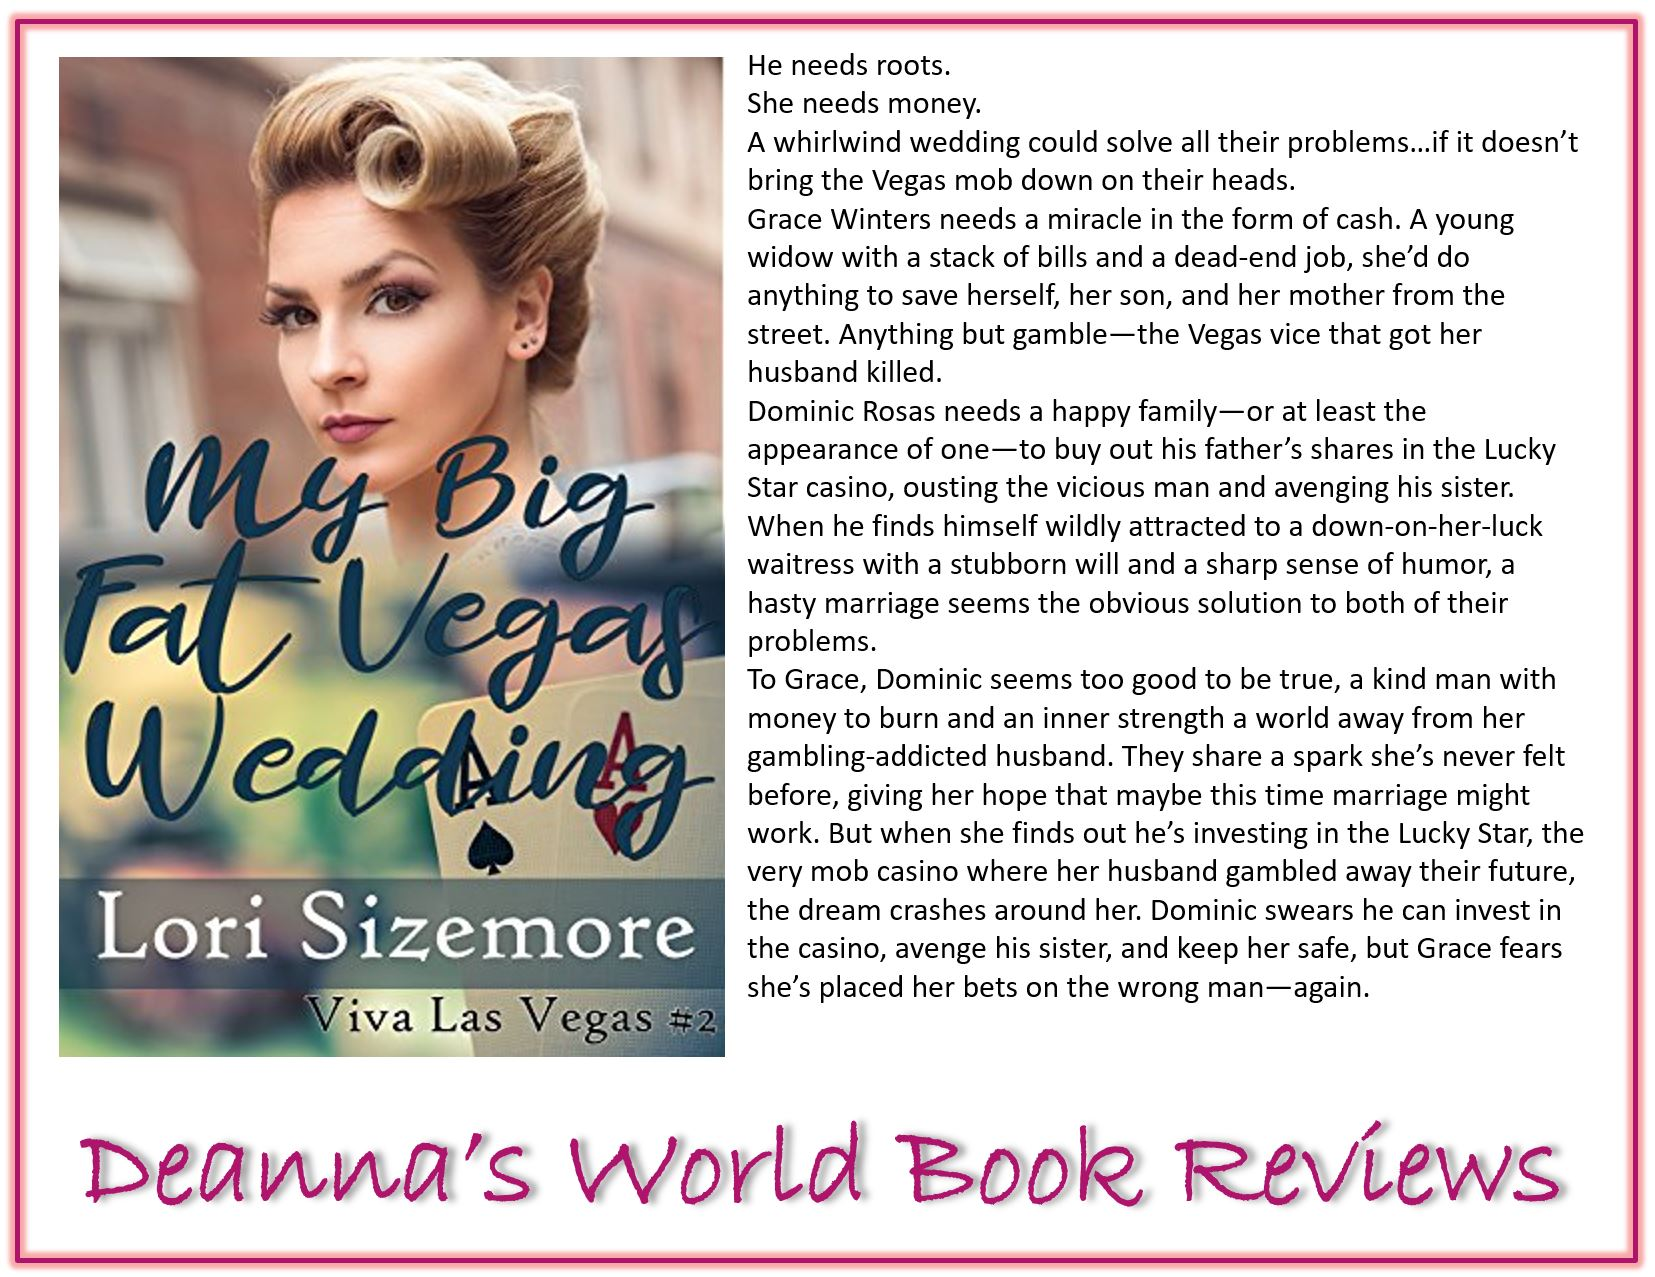 My Big Fat Vegas Wedding by Lori Sizemore blurb